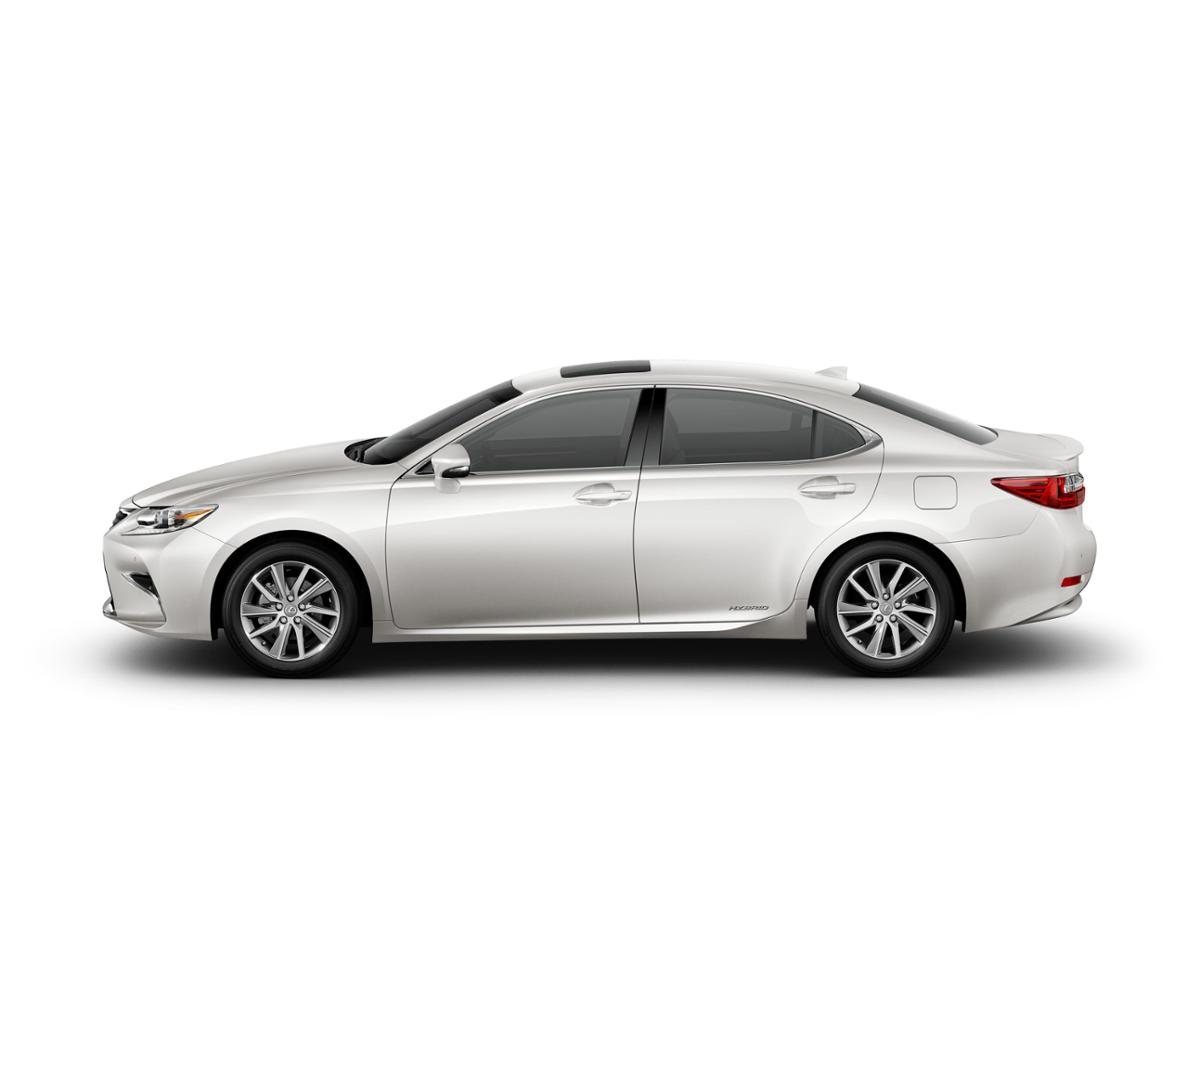 2017 Lexus ES 300h Vehicle Photo in Santa Barbara, CA 93105